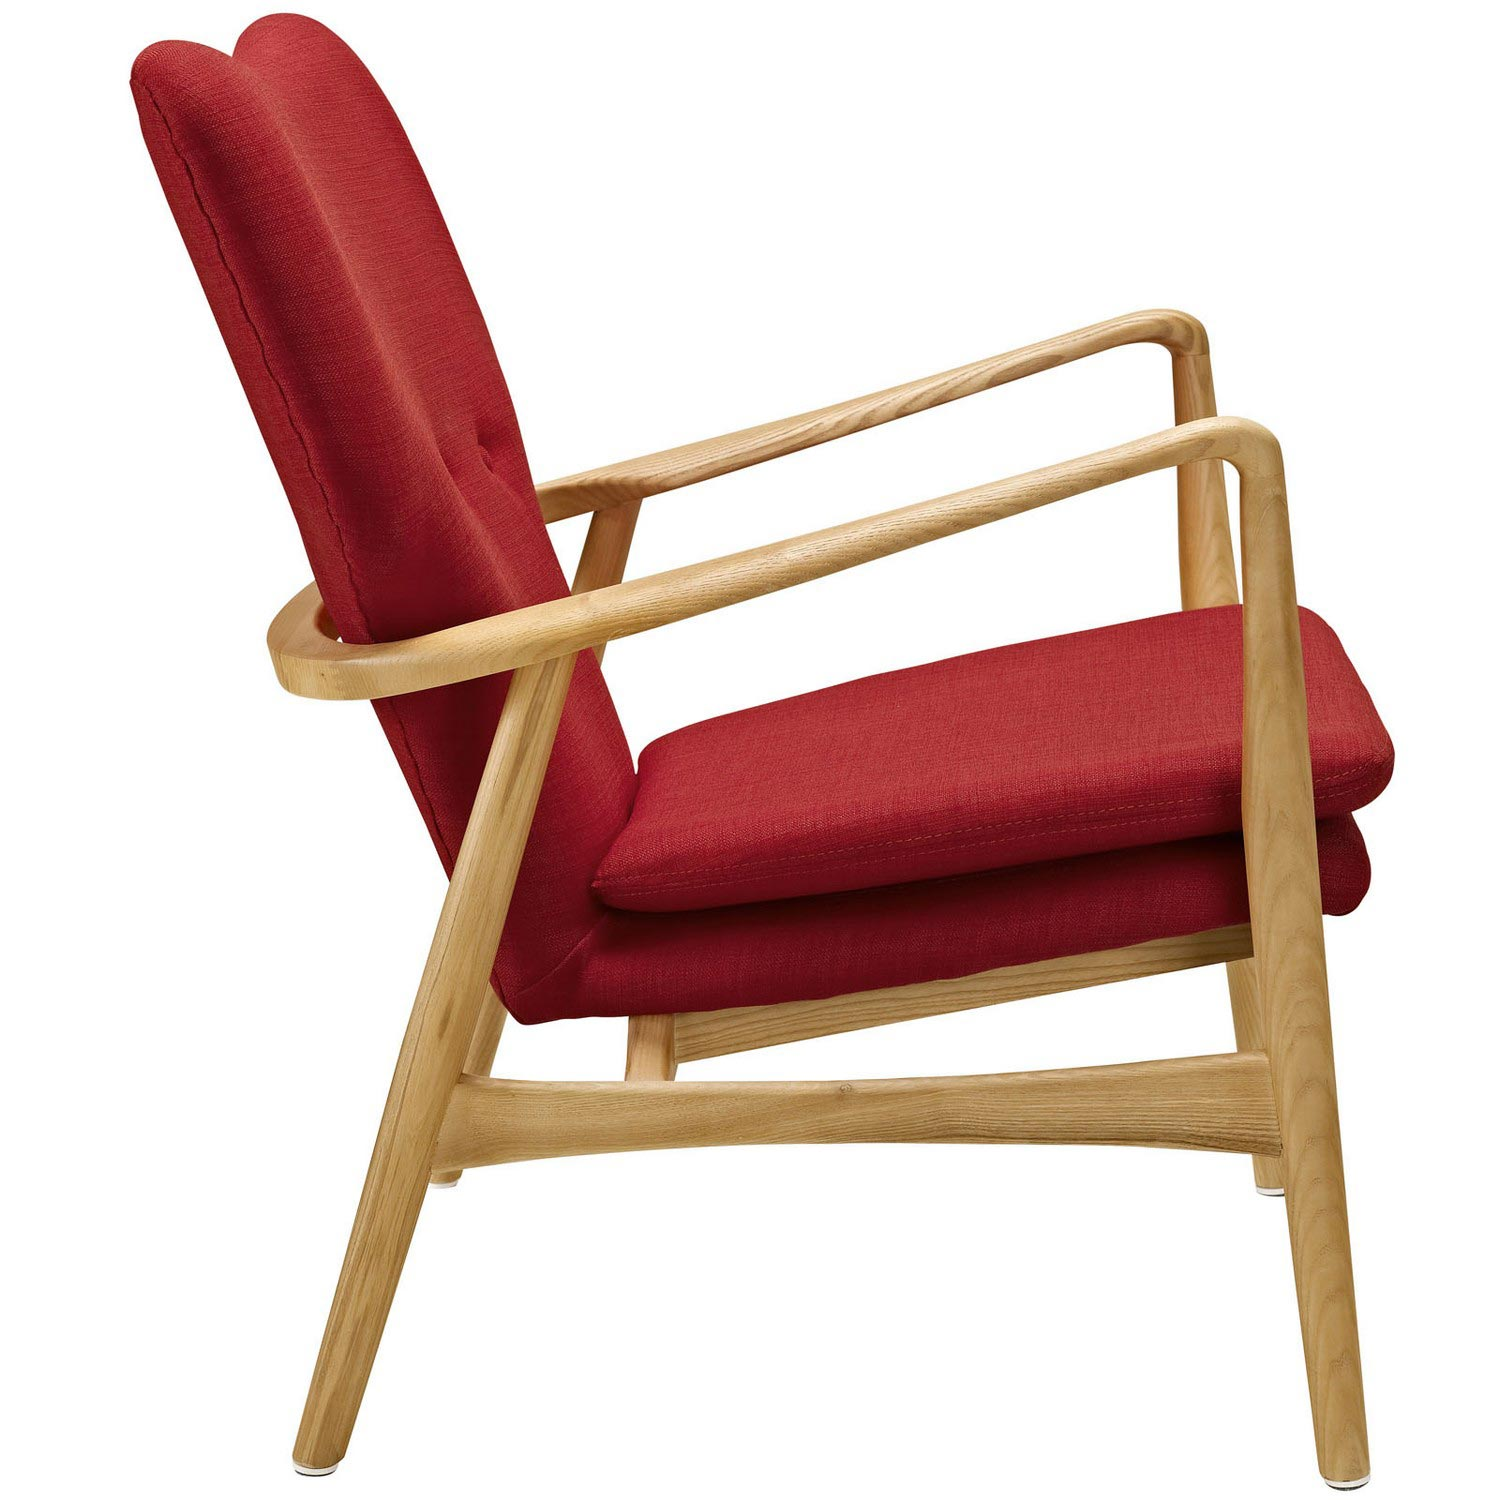 Modway Heed Lounge Chair - Birch Red